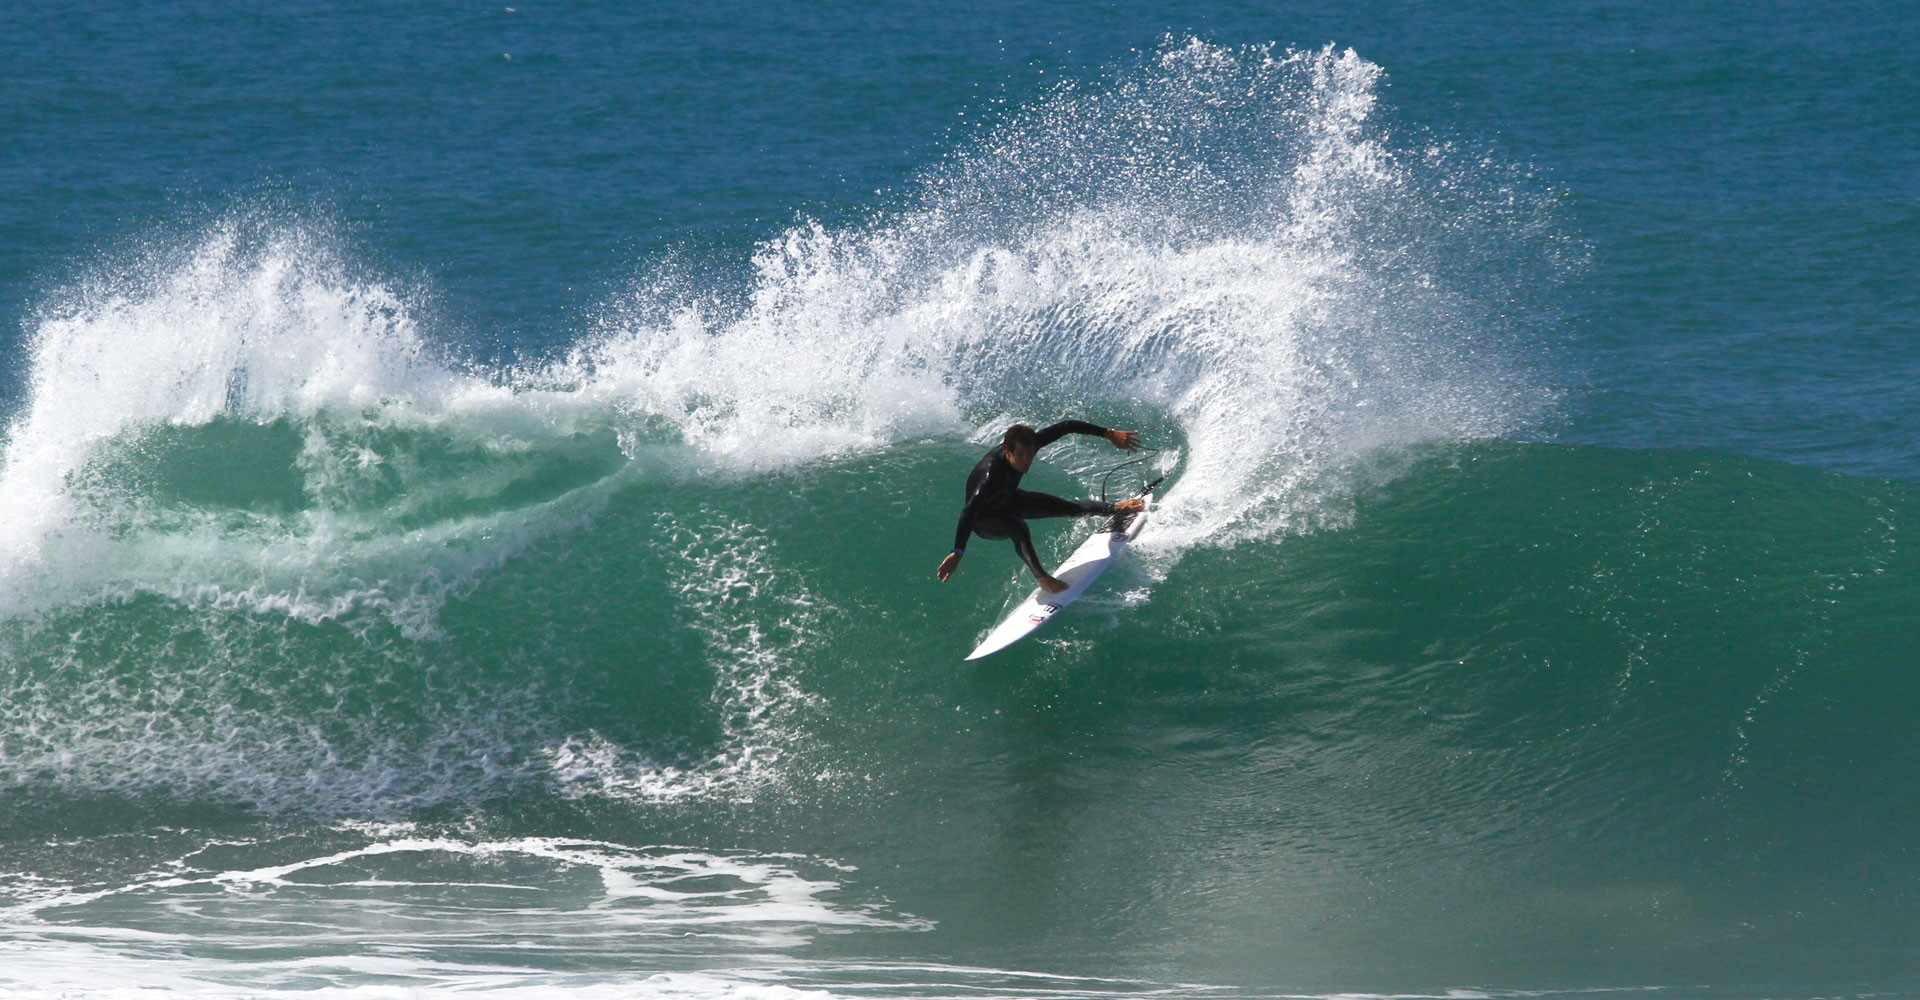 Portuguese talent Filipe Jervis in vice european pro junior and isa champion.